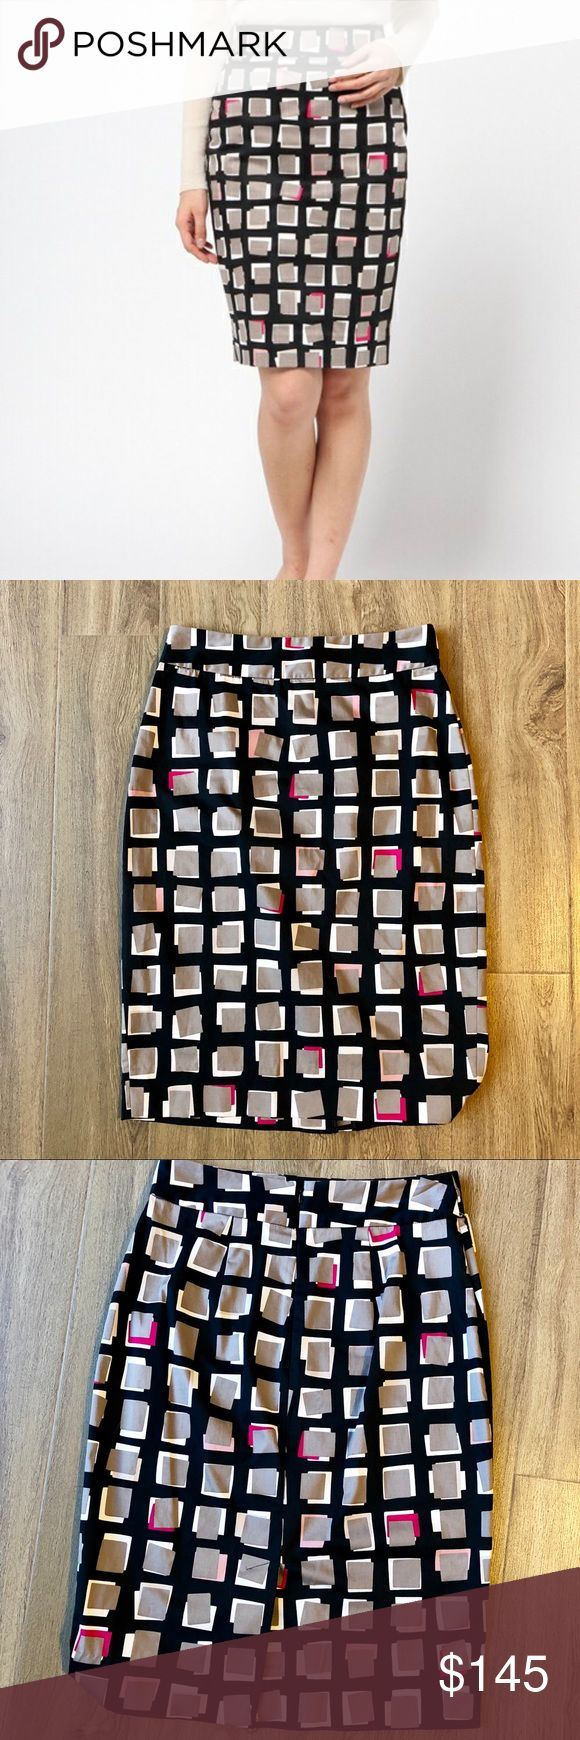 "NWT Kate Spade Abstract Sweets Pencil Skirt 0 Add a pop of color to your wardrobe in this chic tile motif pencil skirt!  NWT Abstracts Sweet Pencil Skirt Creme de la creme black Tile motif with pops of color for depth Pencil skirt Streamlined silhouette Back zip closure Unlined Black with gray tiles and splashes of pink Length: 25"" approx. 97% cotton, 3% elastane Dry clean  Smoke free, pet friendly home kate spade Skirts Pencil"